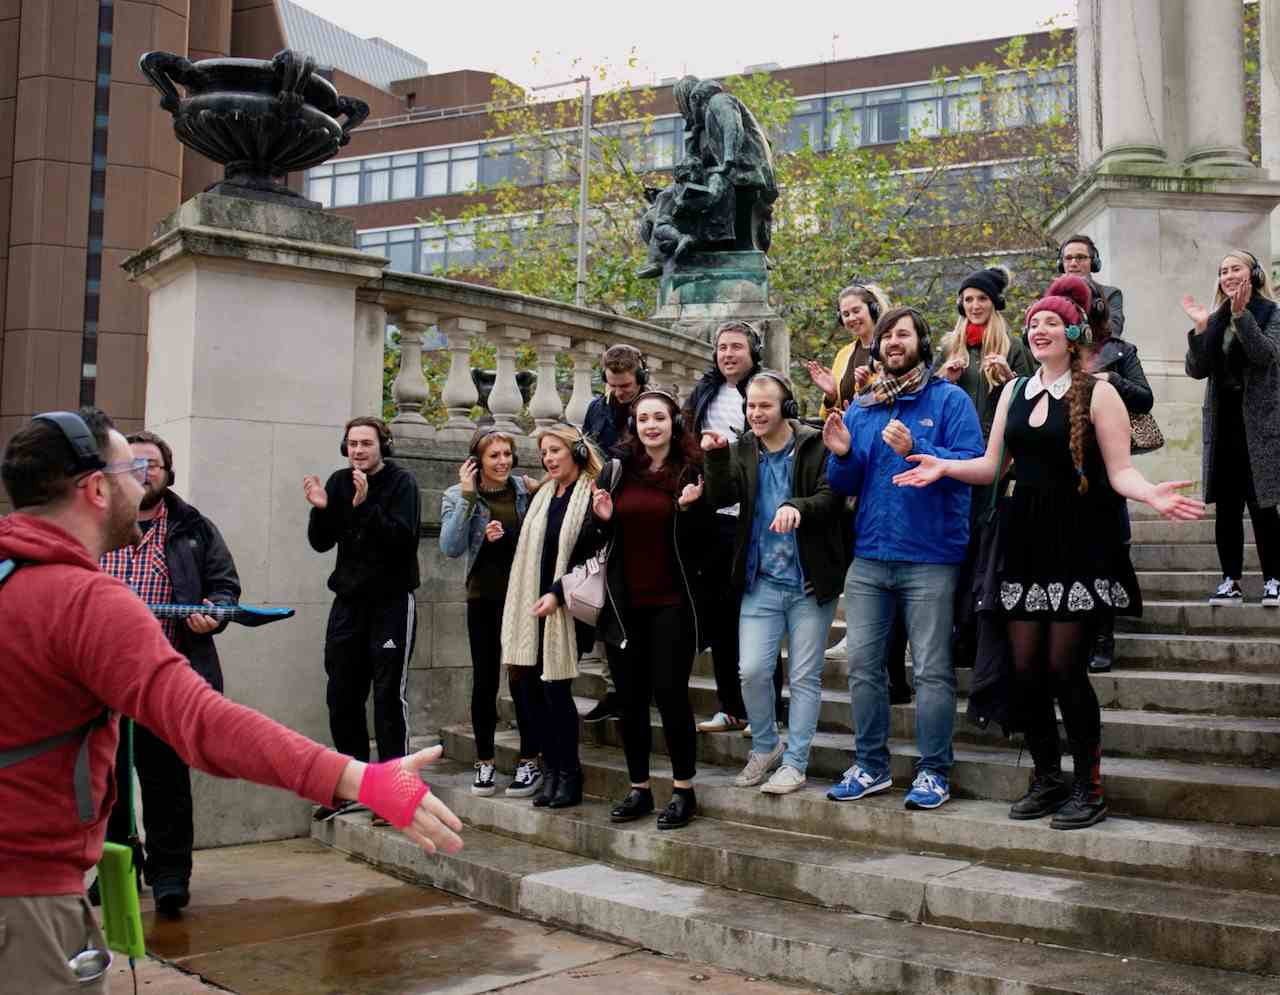 Singing Bohemian Rhapsody outside Liverpool Law Courts